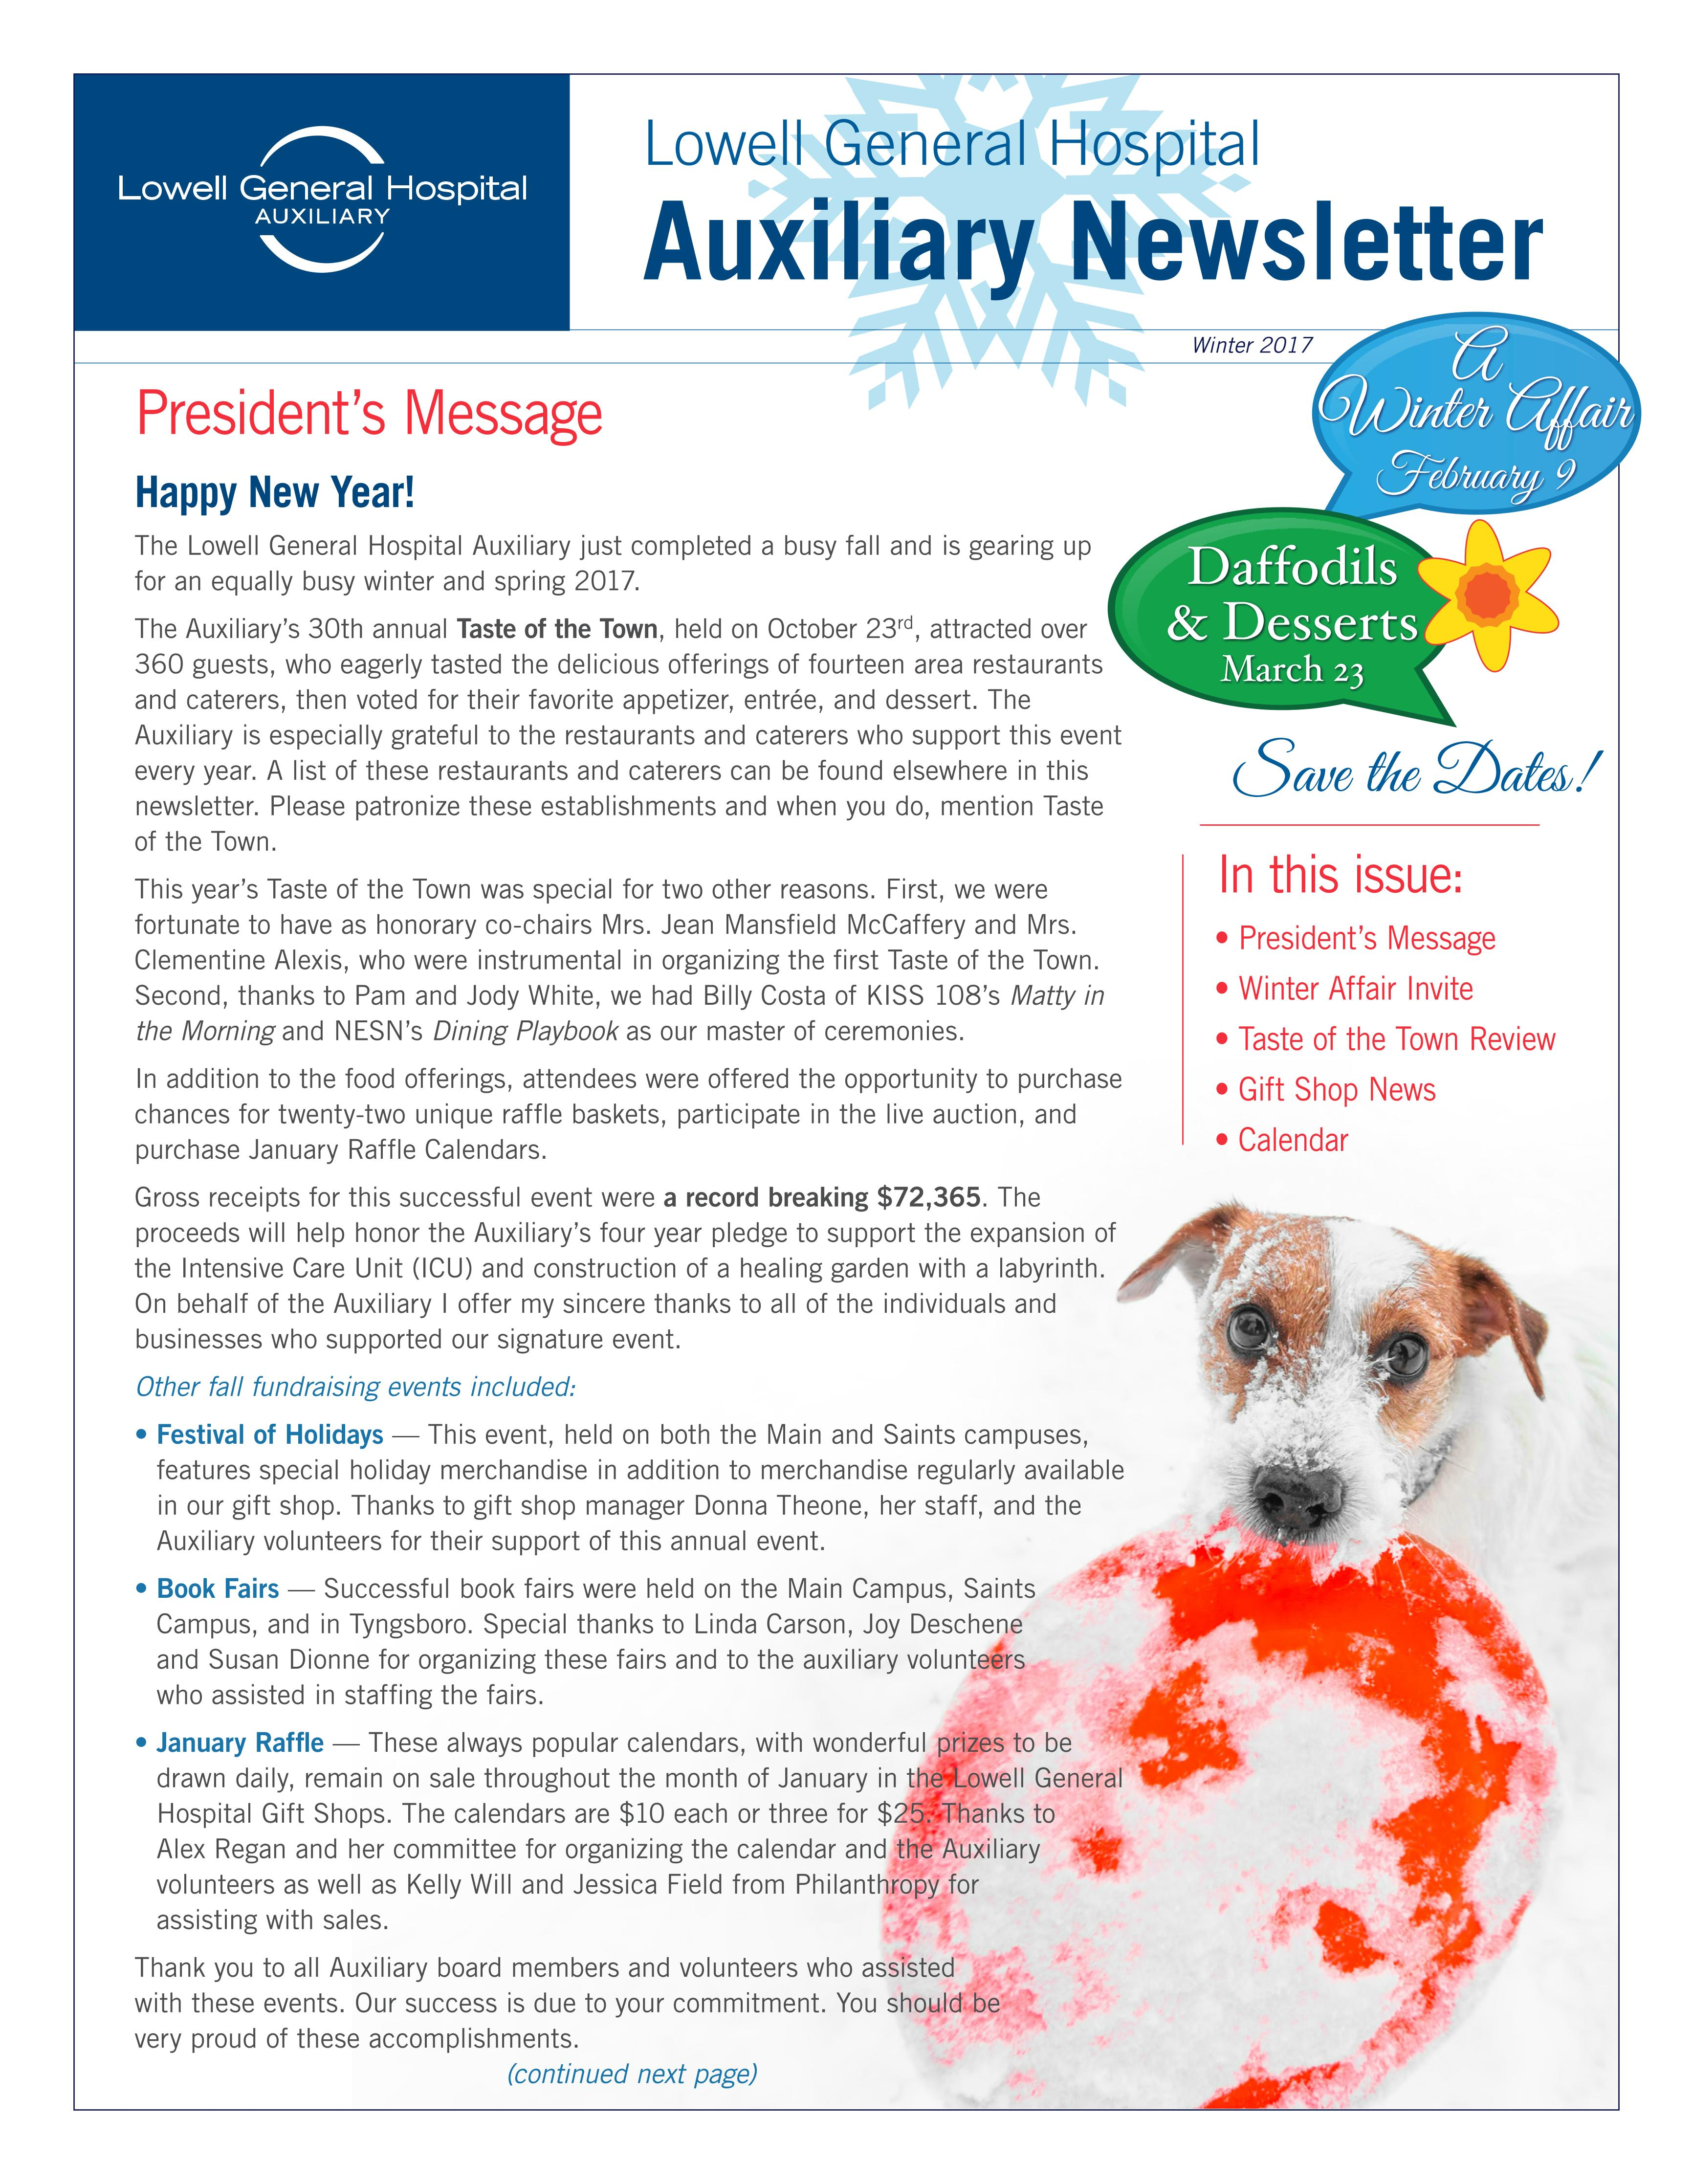 Winter 2017 Auxiliary Newsletter